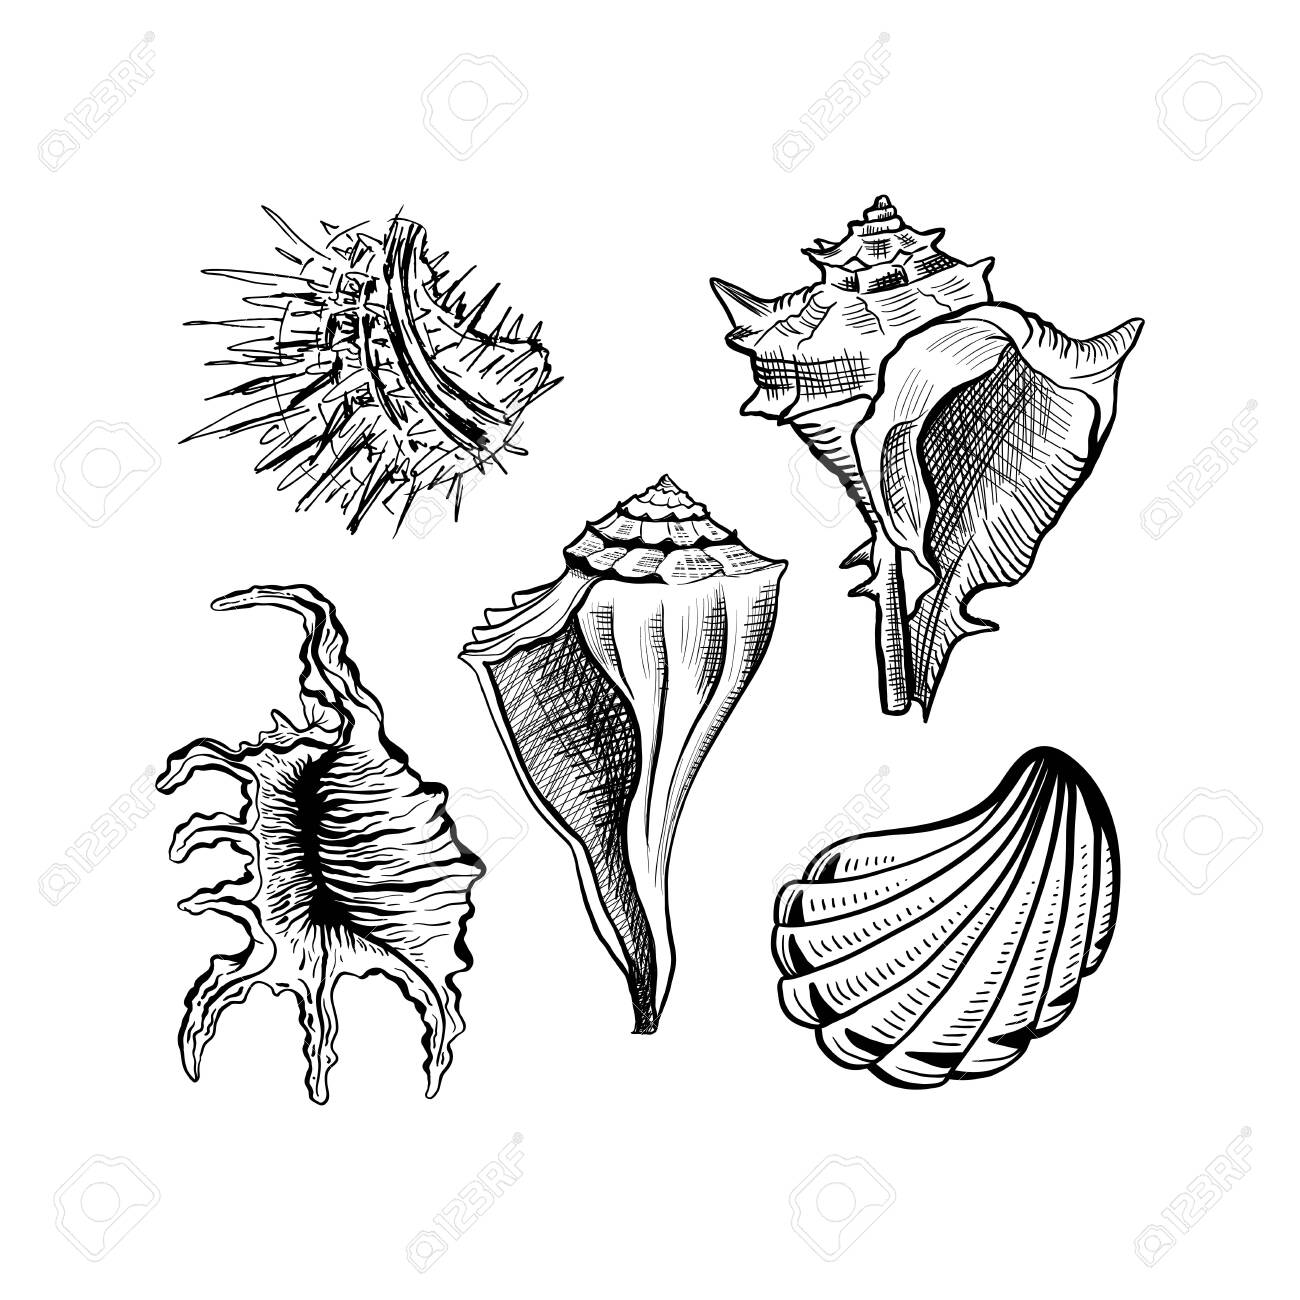 Angular murex seashell hand drawn vector set. Seashore conch, mollusk monochrome sketch. Freehand outline clam shell engraving. Conchology isolated design elements. Realistic ink pen drawing - 122405413